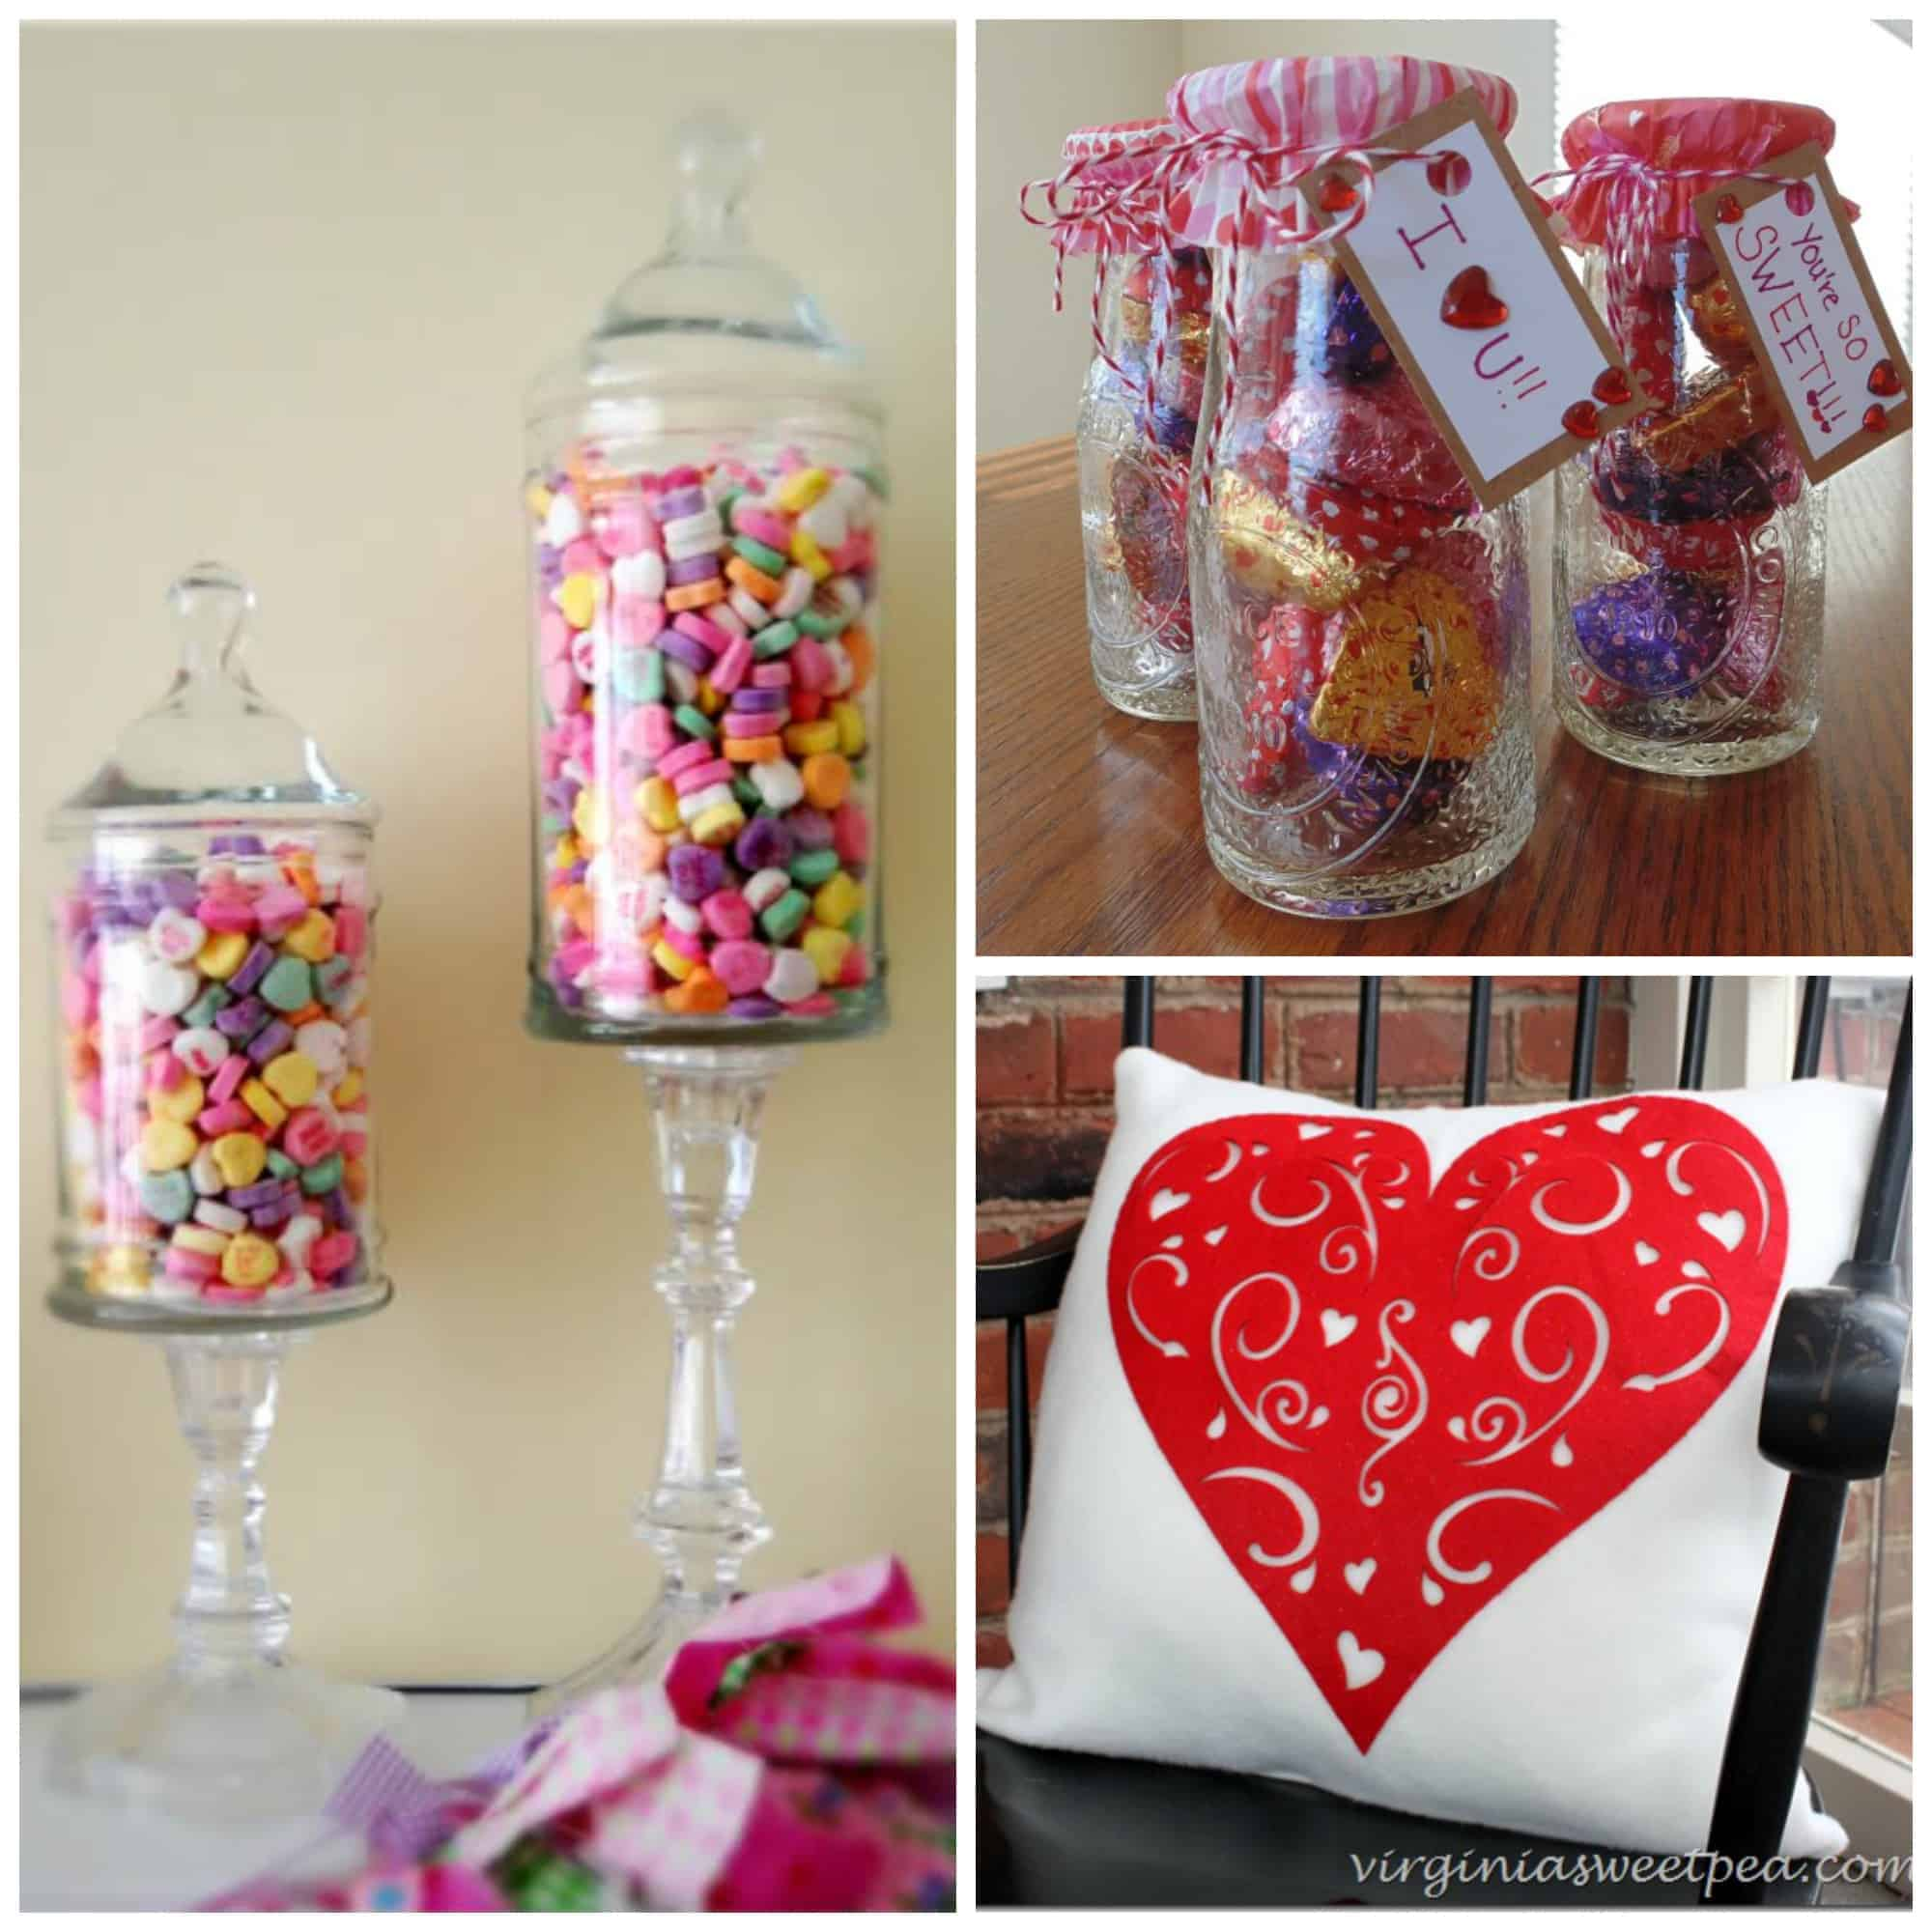 These 10 Dollar Store Decor Hacks are THE BEST! I'm so glad I found these AWESOME Valentines Day home decor ideas and tips! Now I have great ways to decorate my home for Valentines Day on a budget! Definitely pinning!